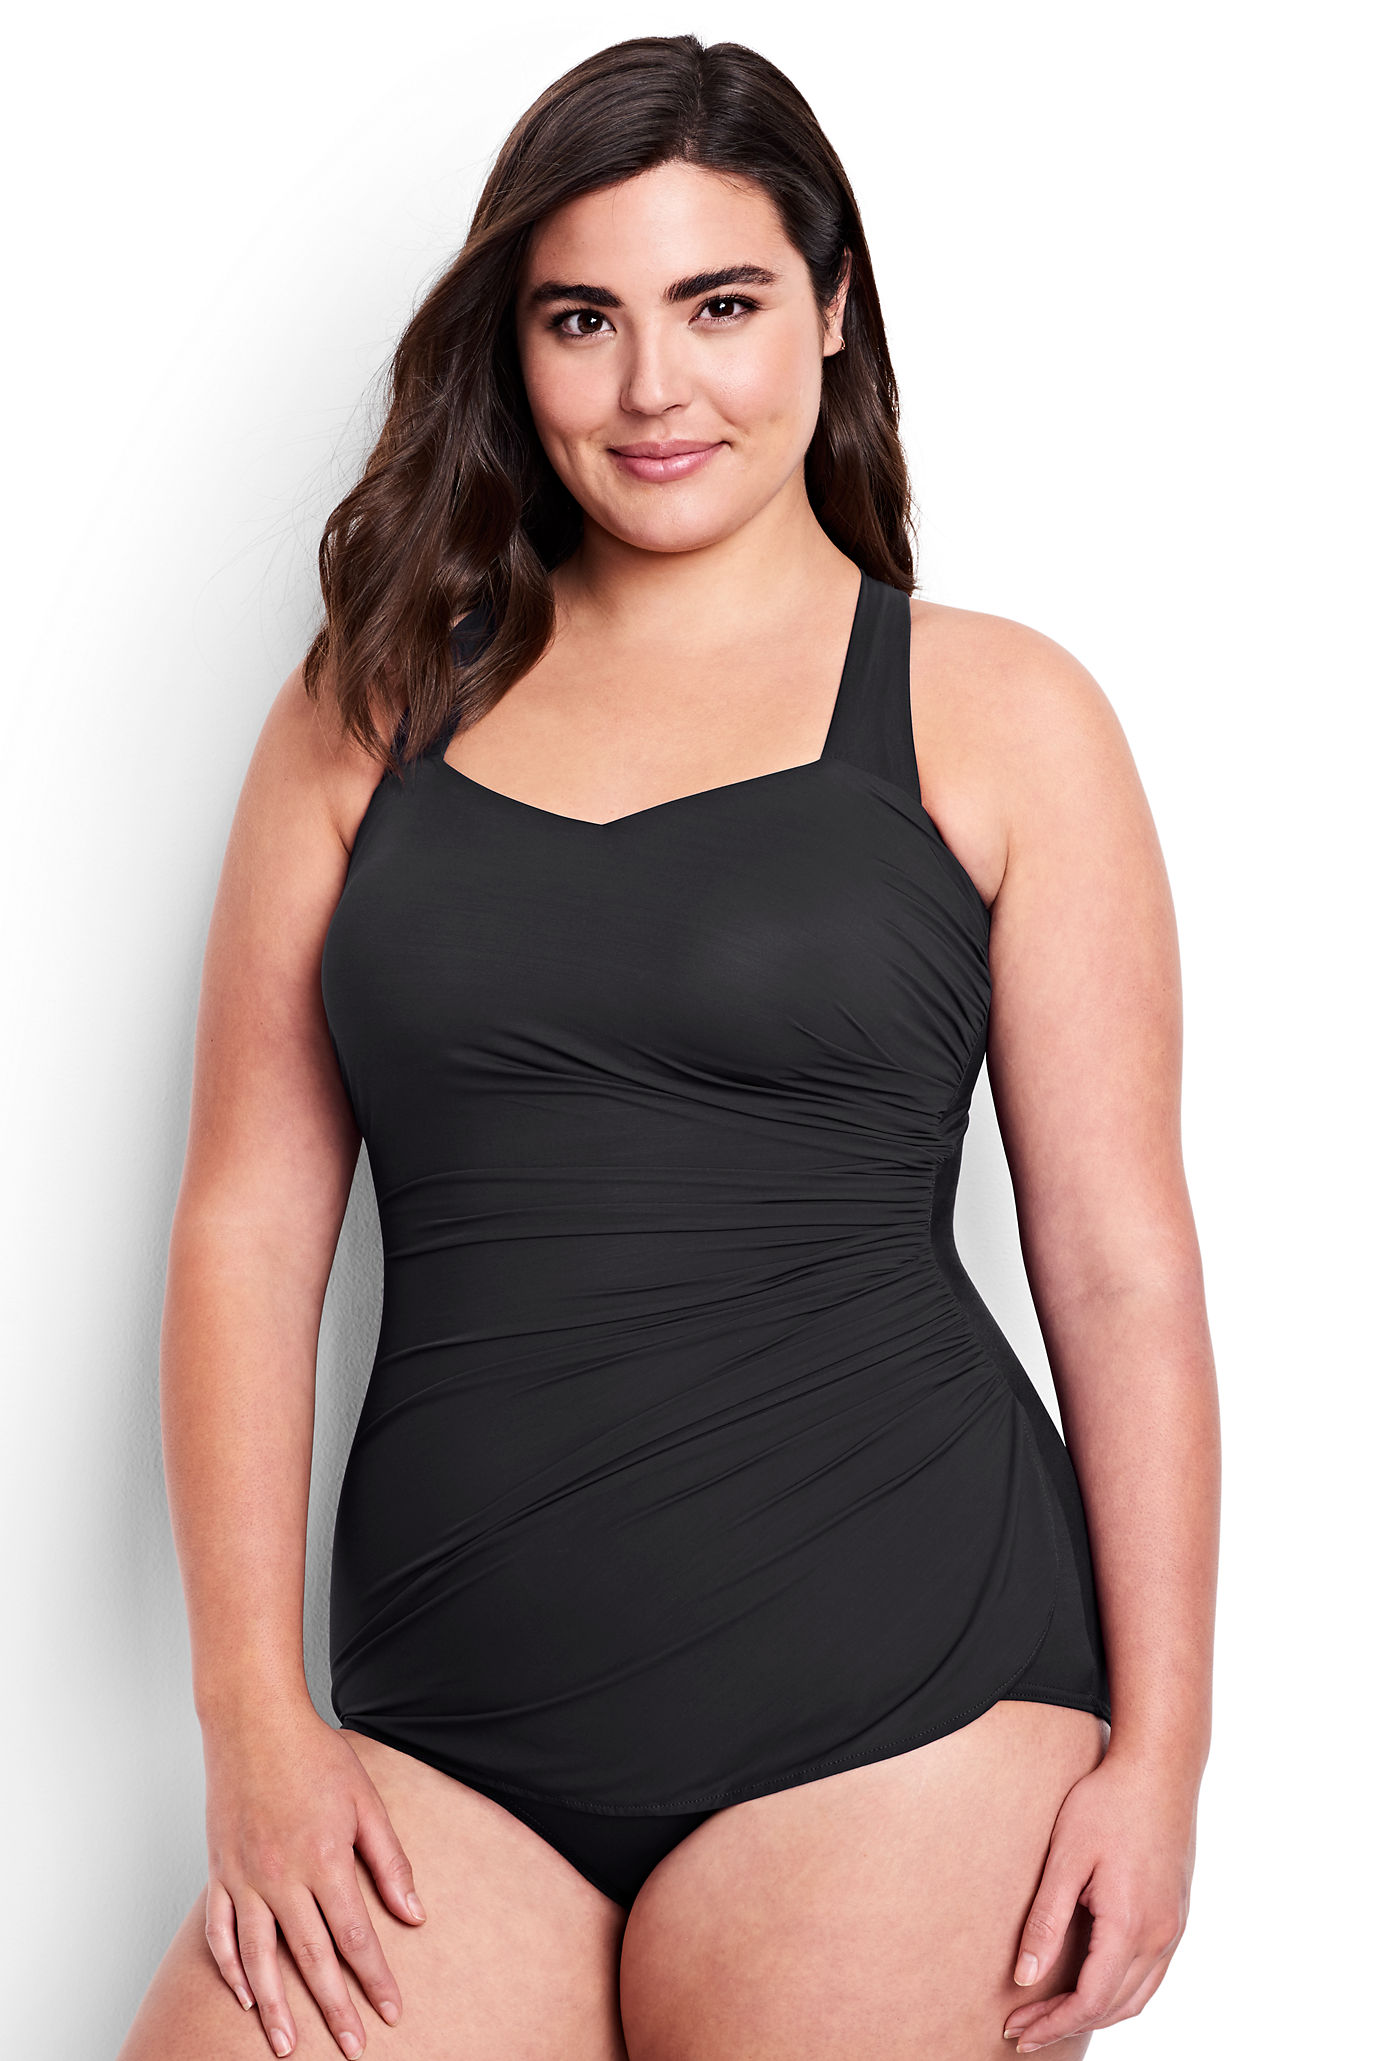 fad844573b1 Land's End Slender One-Piece Tunic – Shirring creates a waistline while  Slendertex fabric smooths and shapes.